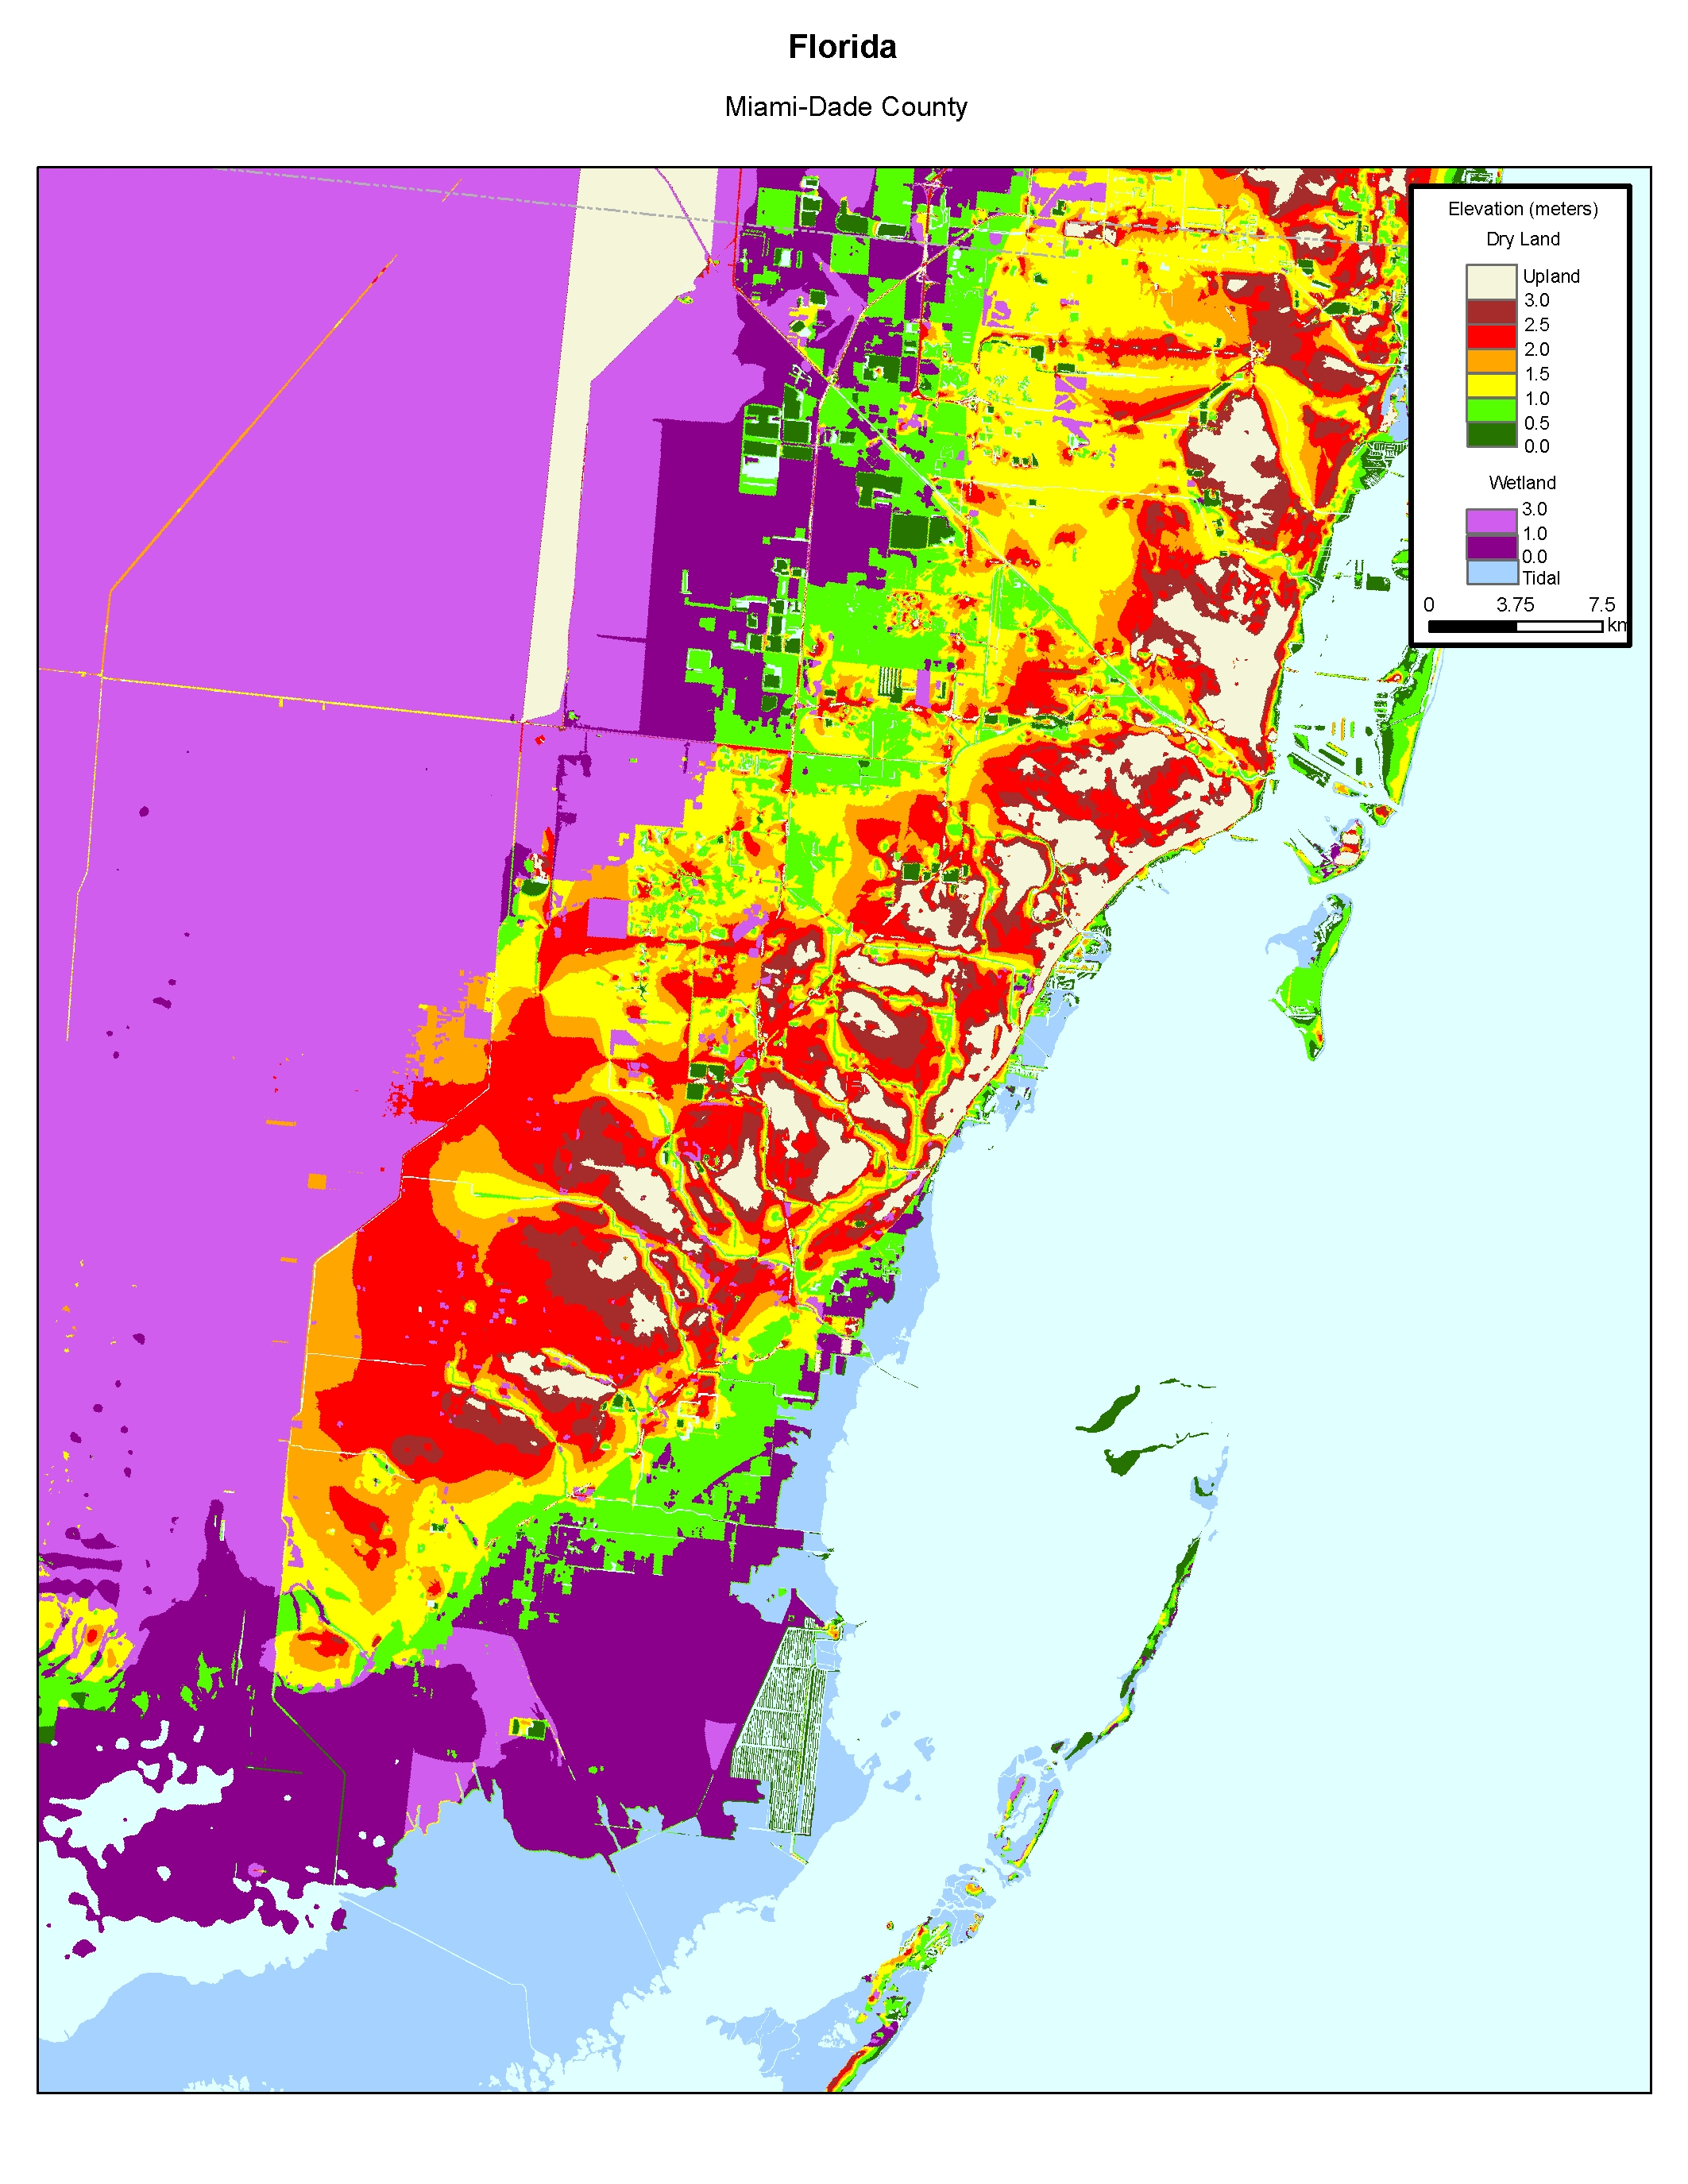 More Sea Level Rise Maps Of Florida's Atlantic Coast - Florida Sea Level Rise Map